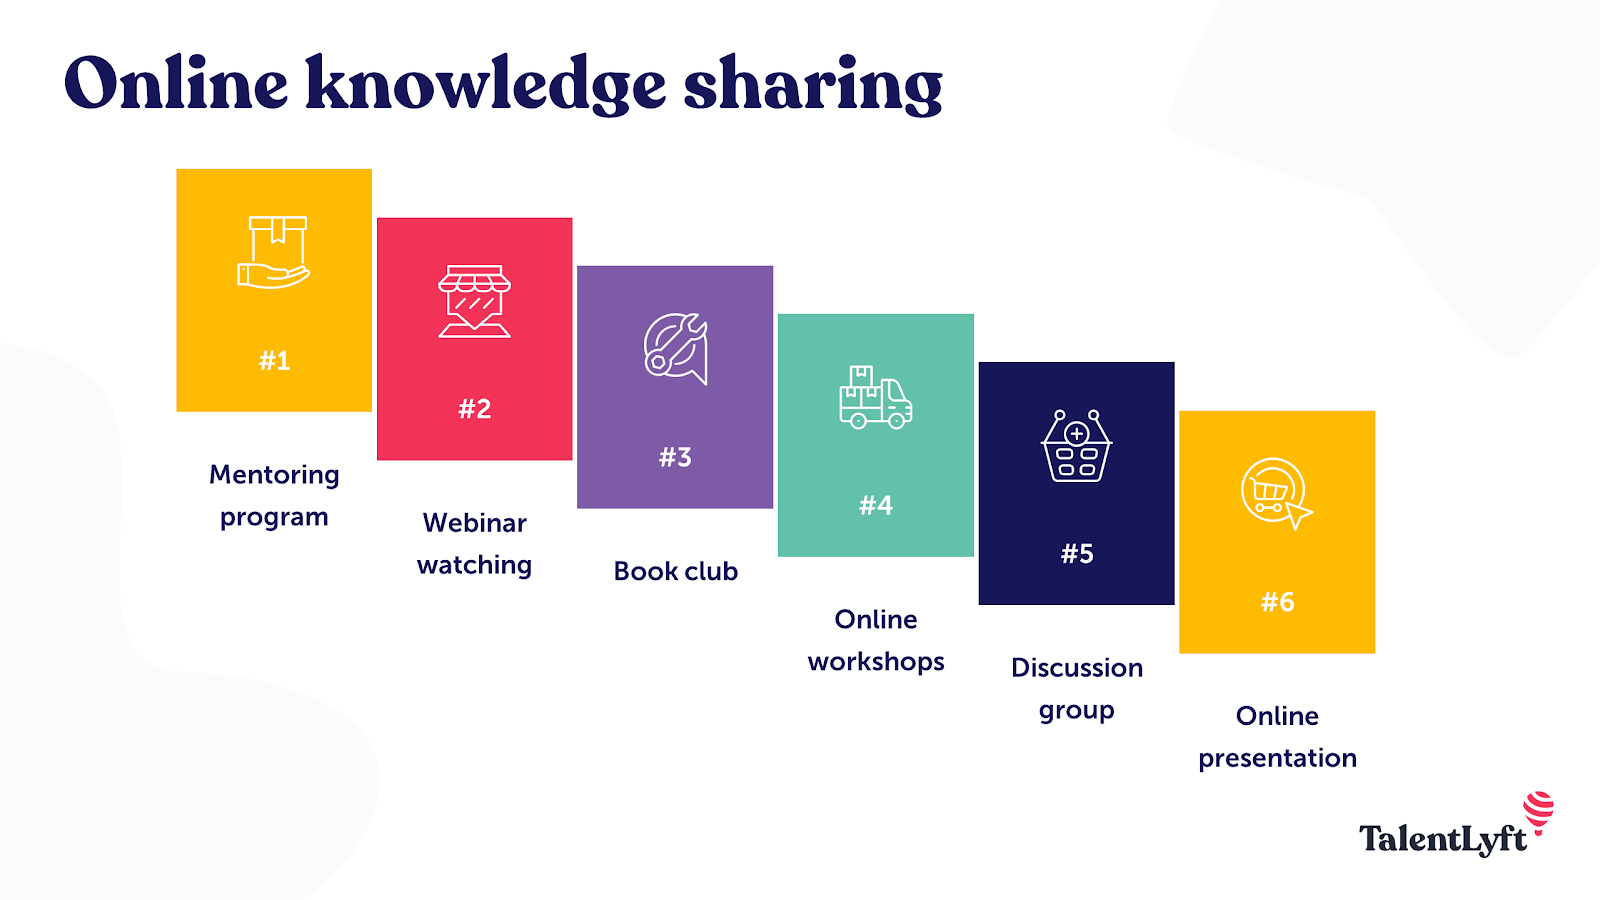 Online knowledge sharing sessions